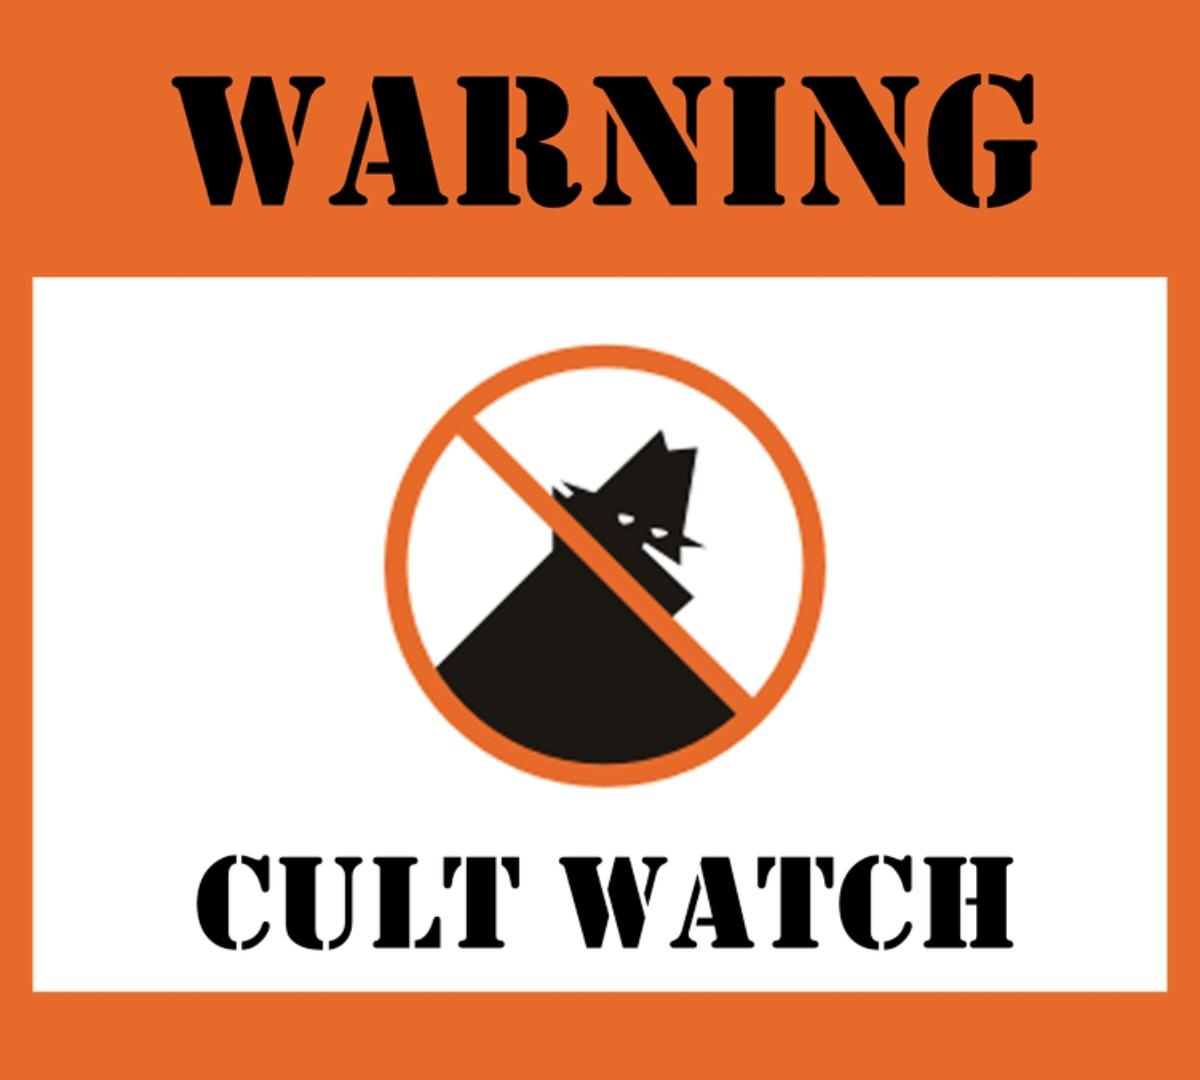 Religious cults